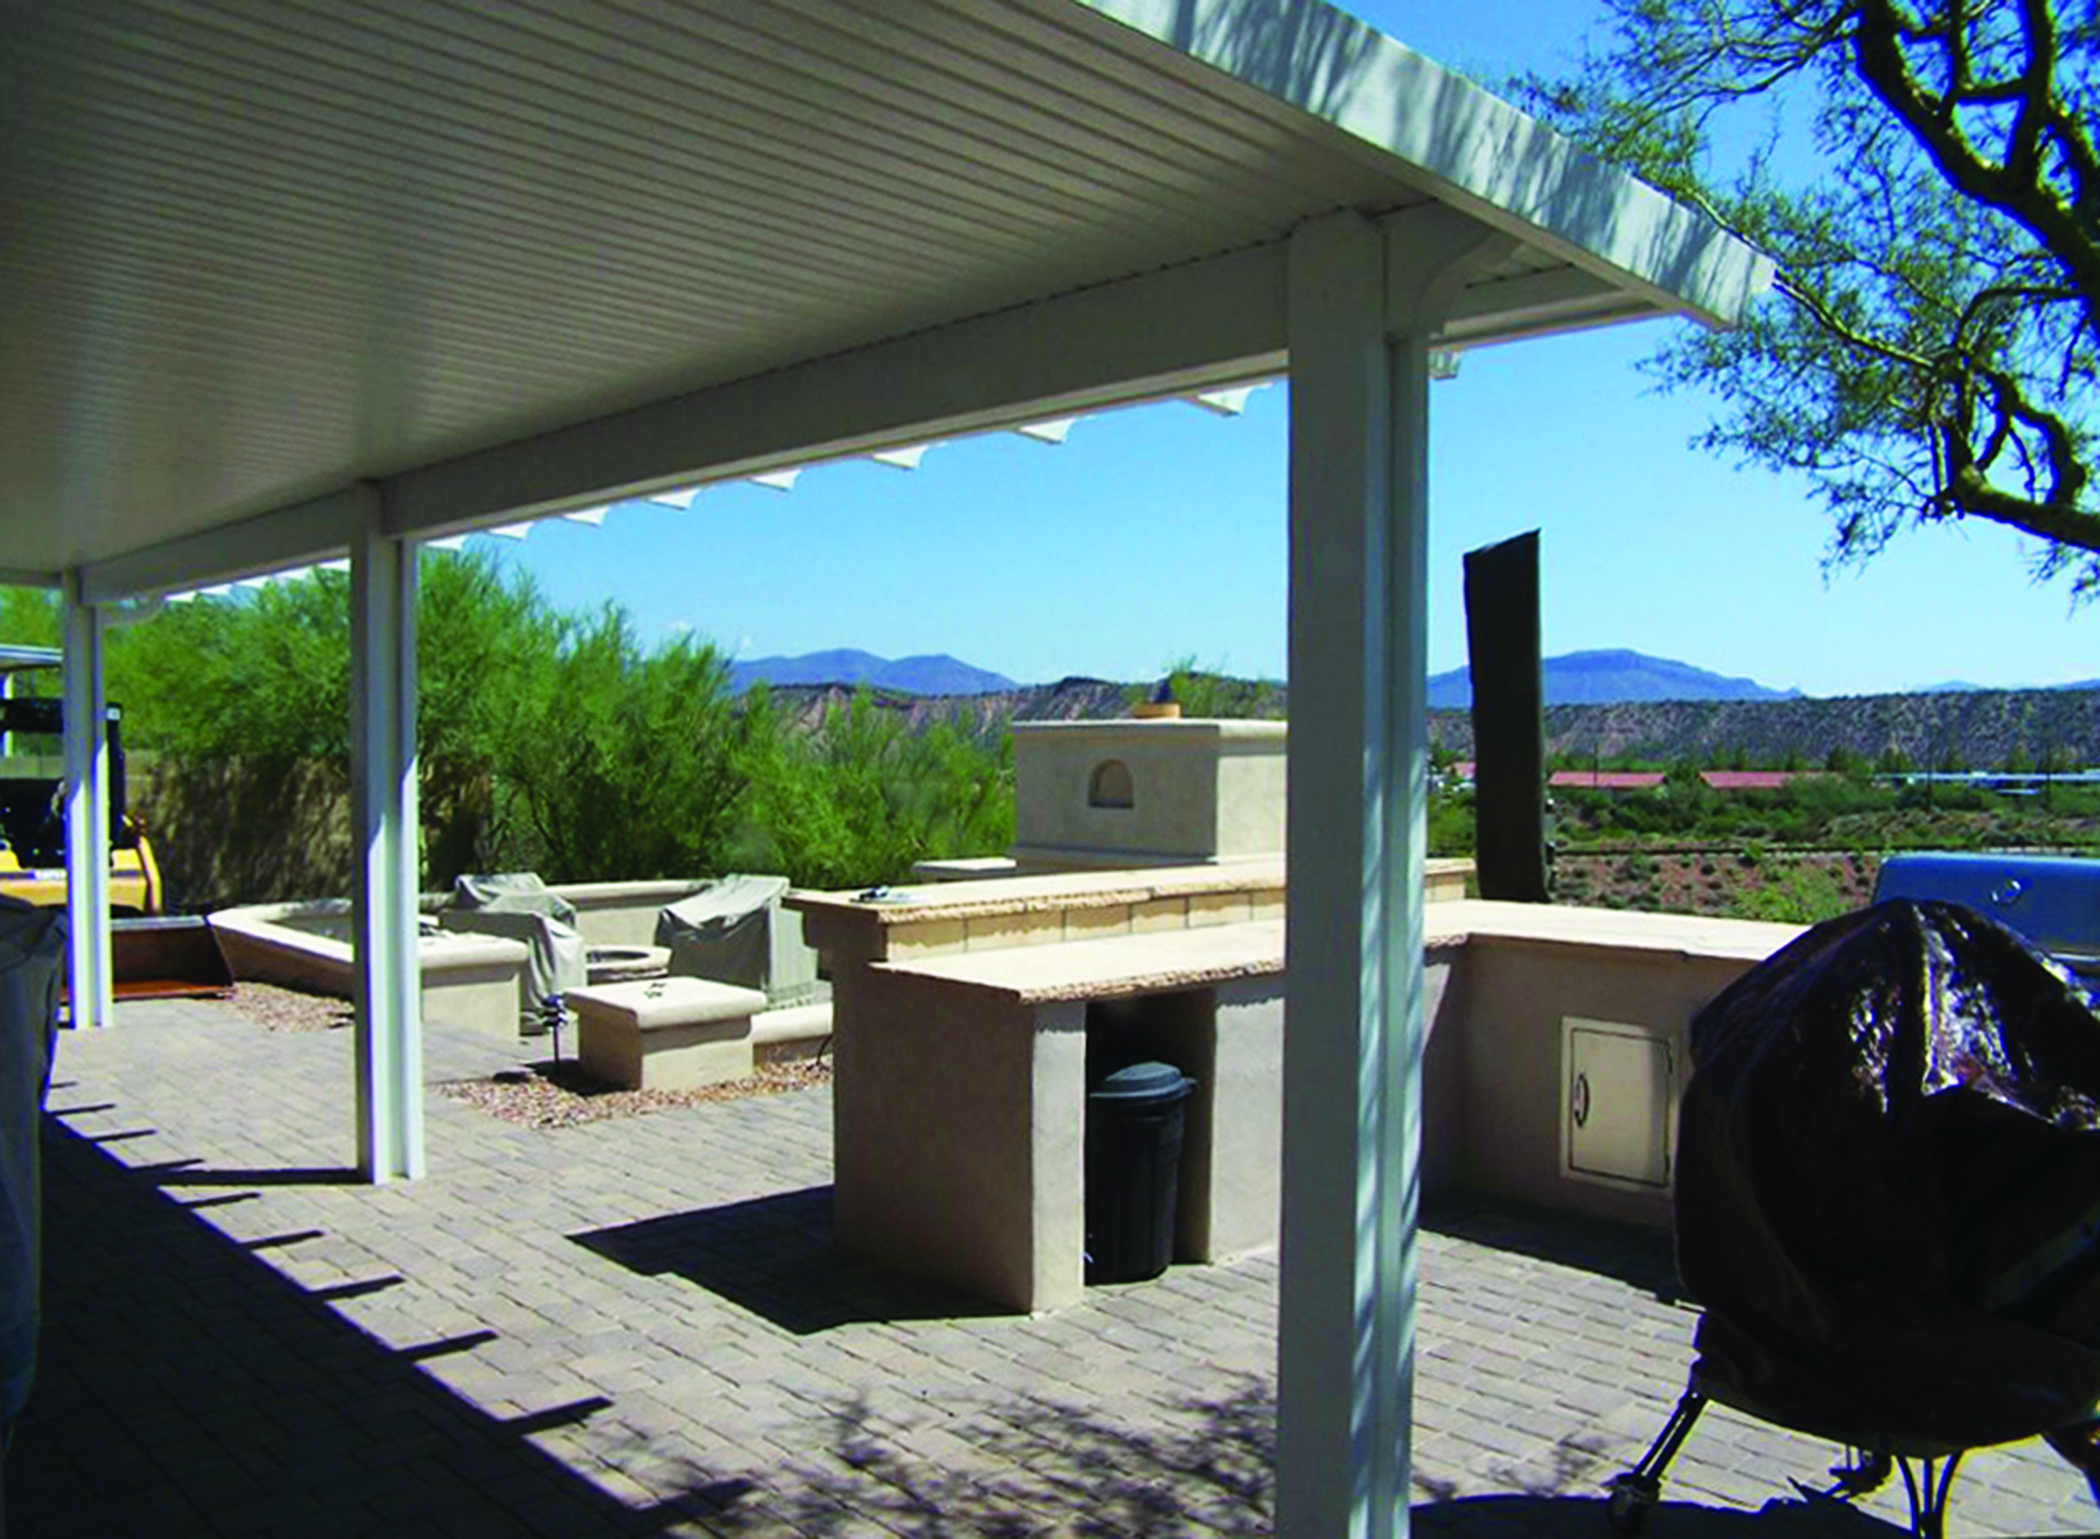 westerner products providing shade and living space solutions in